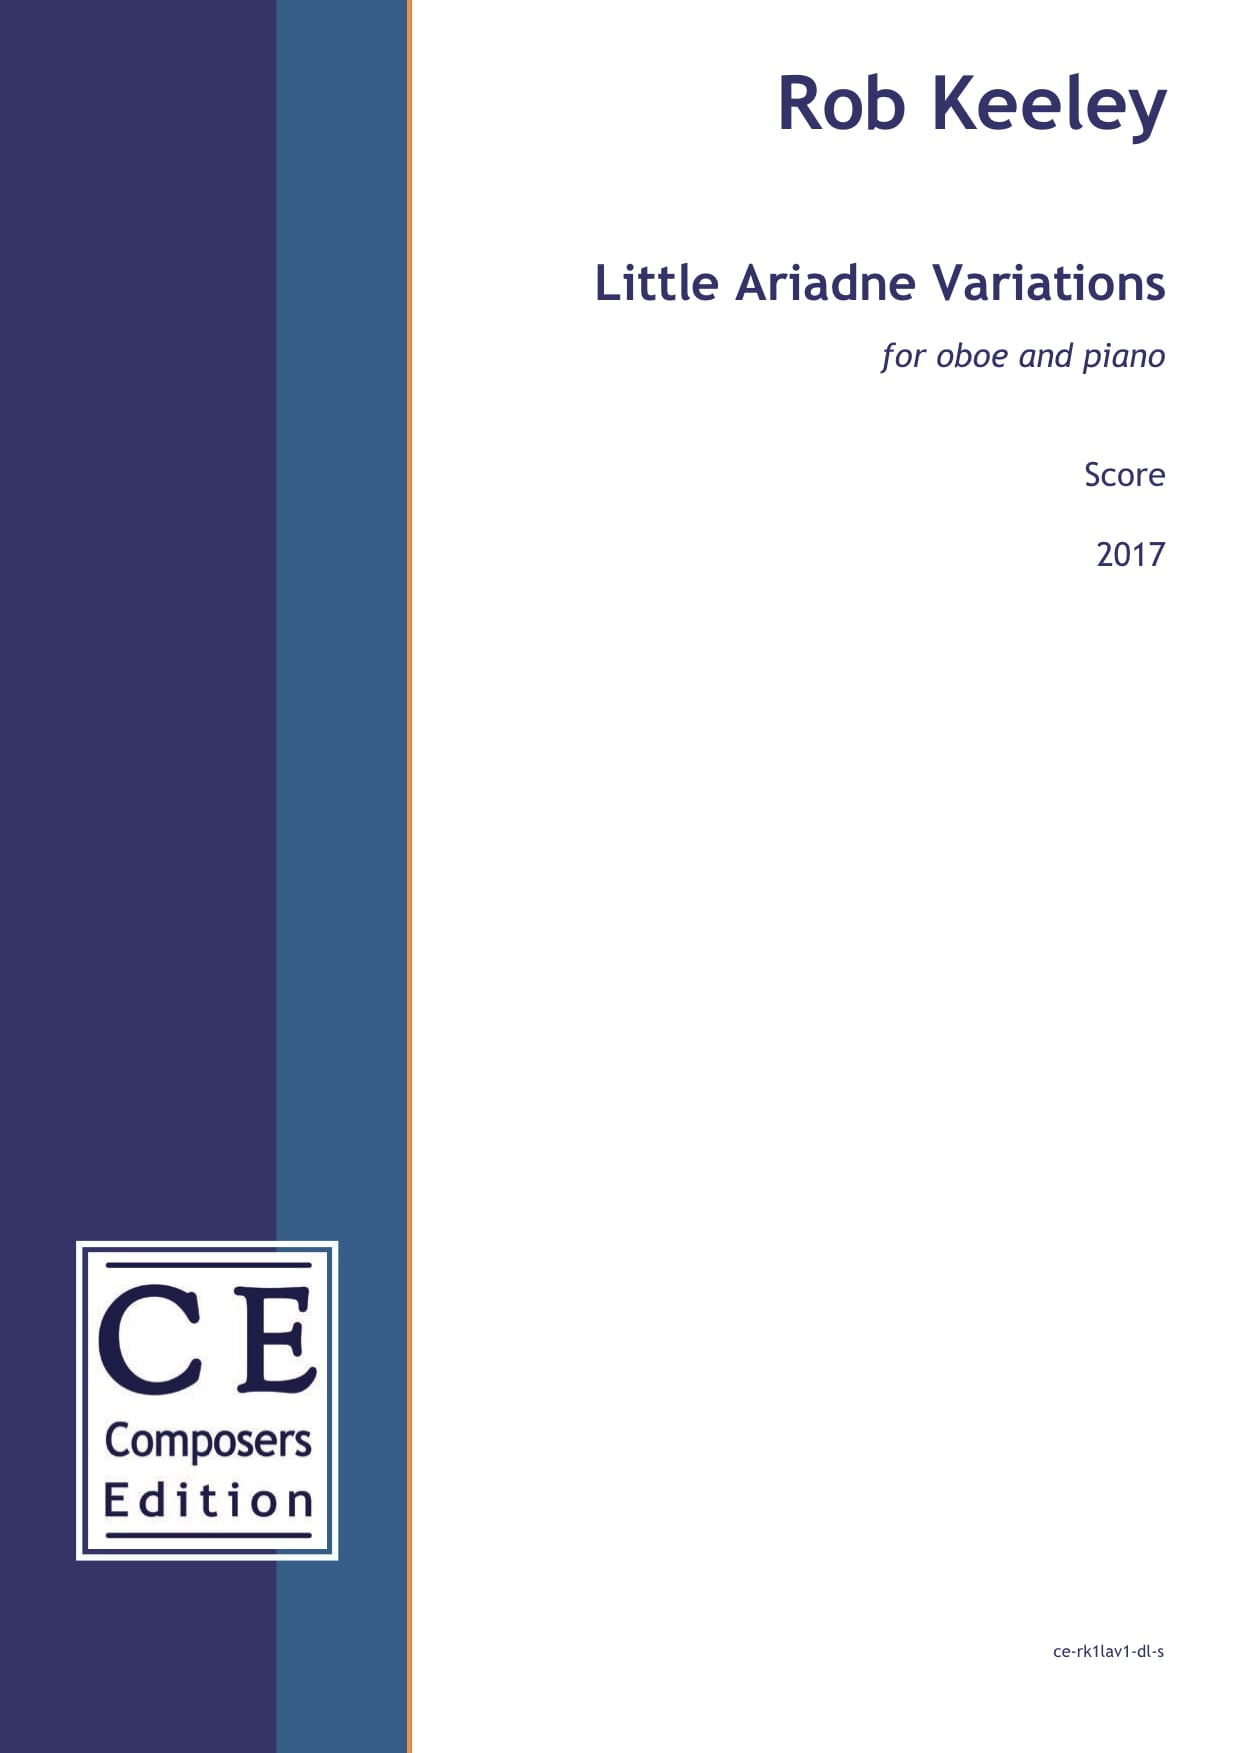 Rob Keeley: Little Ariadne Variations for oboe and piano